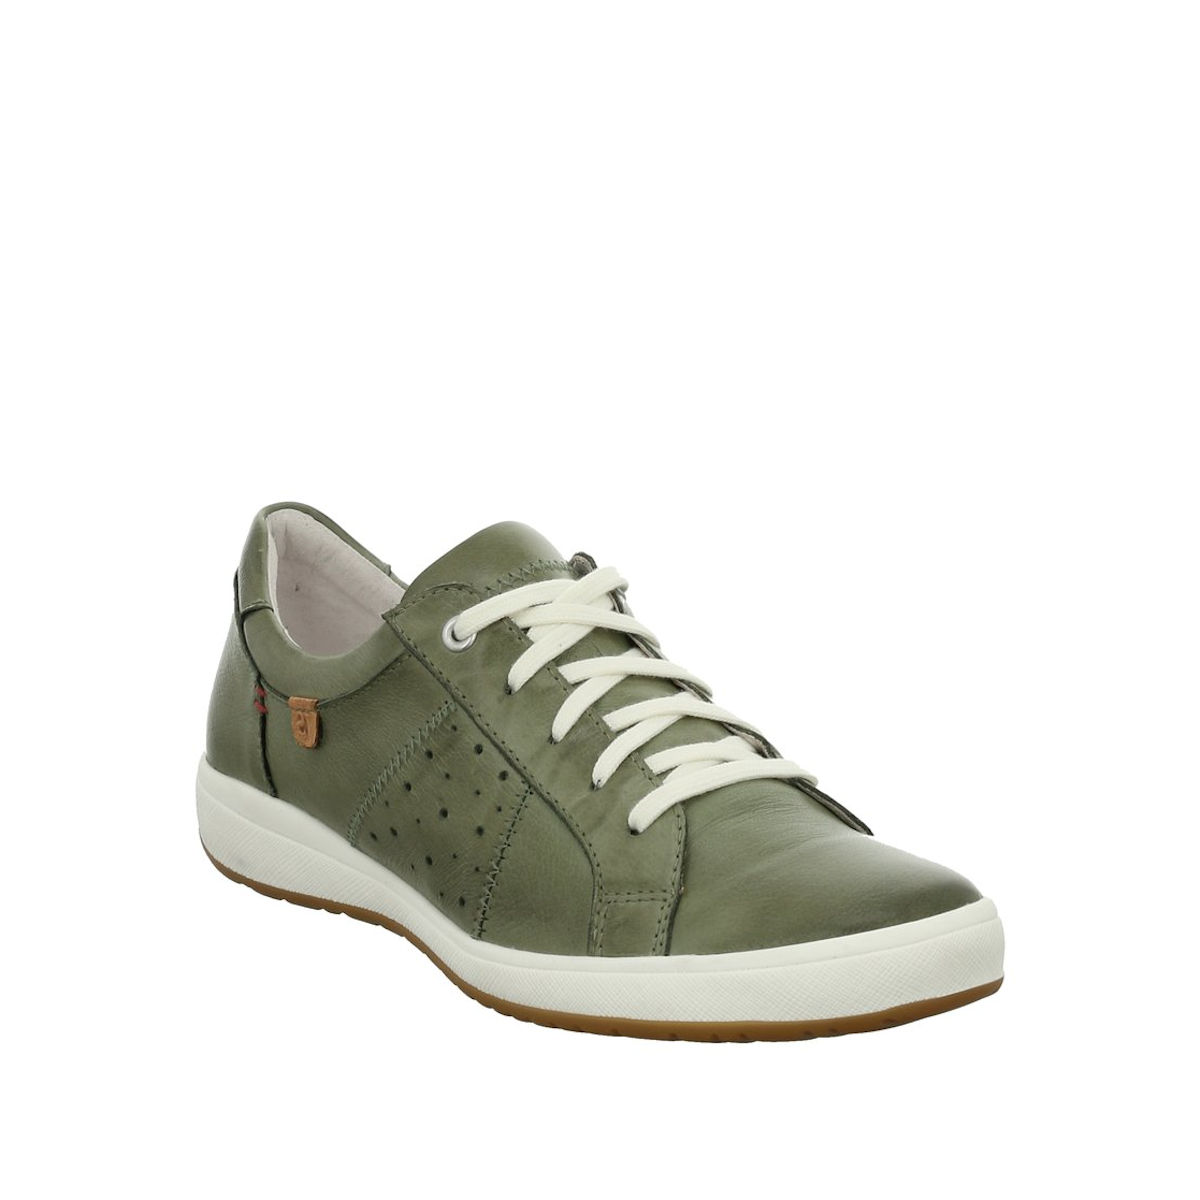 Womens Josef Seibel Caren 01 Mint Green Casual trainer